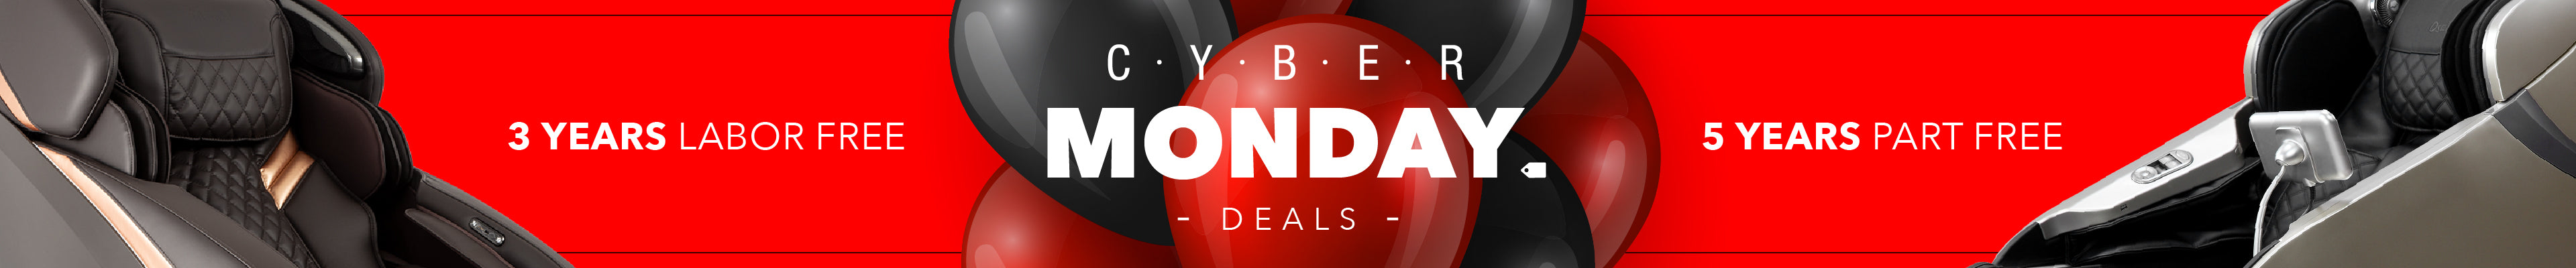 CYBER MONDAY DEALS, 3 years labor free, 5 years part free